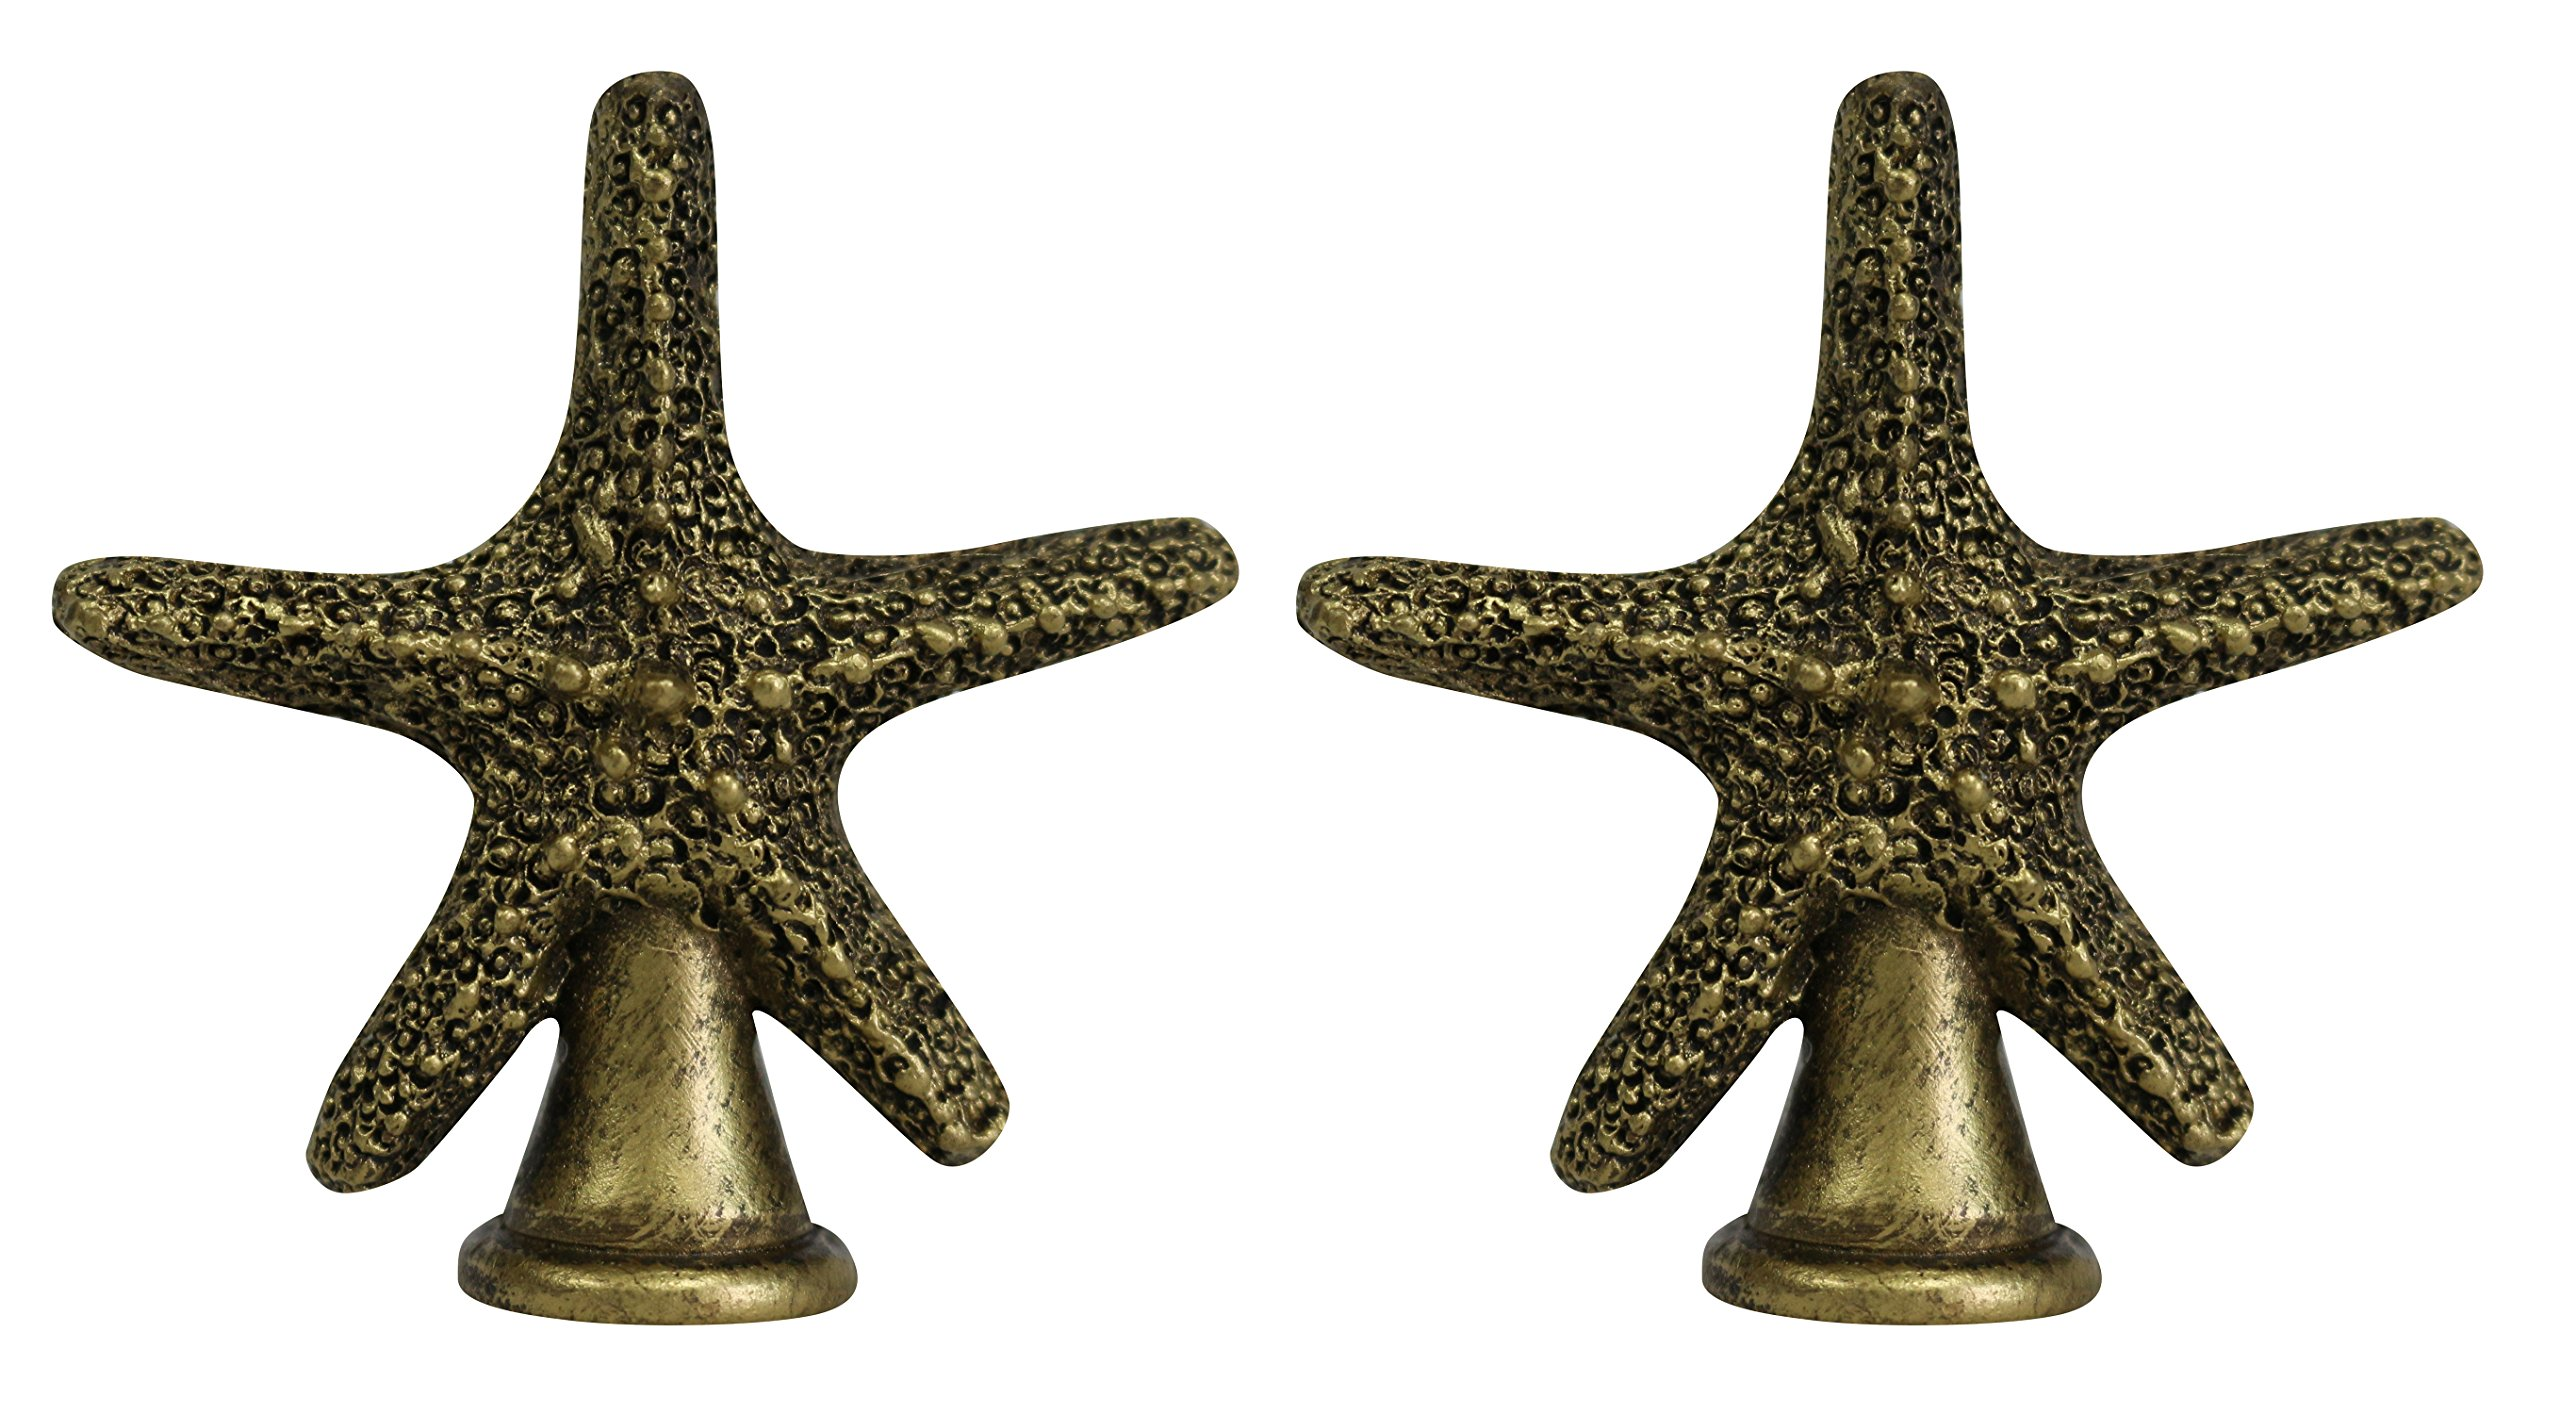 Urbanest Set of 2 Starfish Finial, 2 3/8-inch Tall, Antique Gold